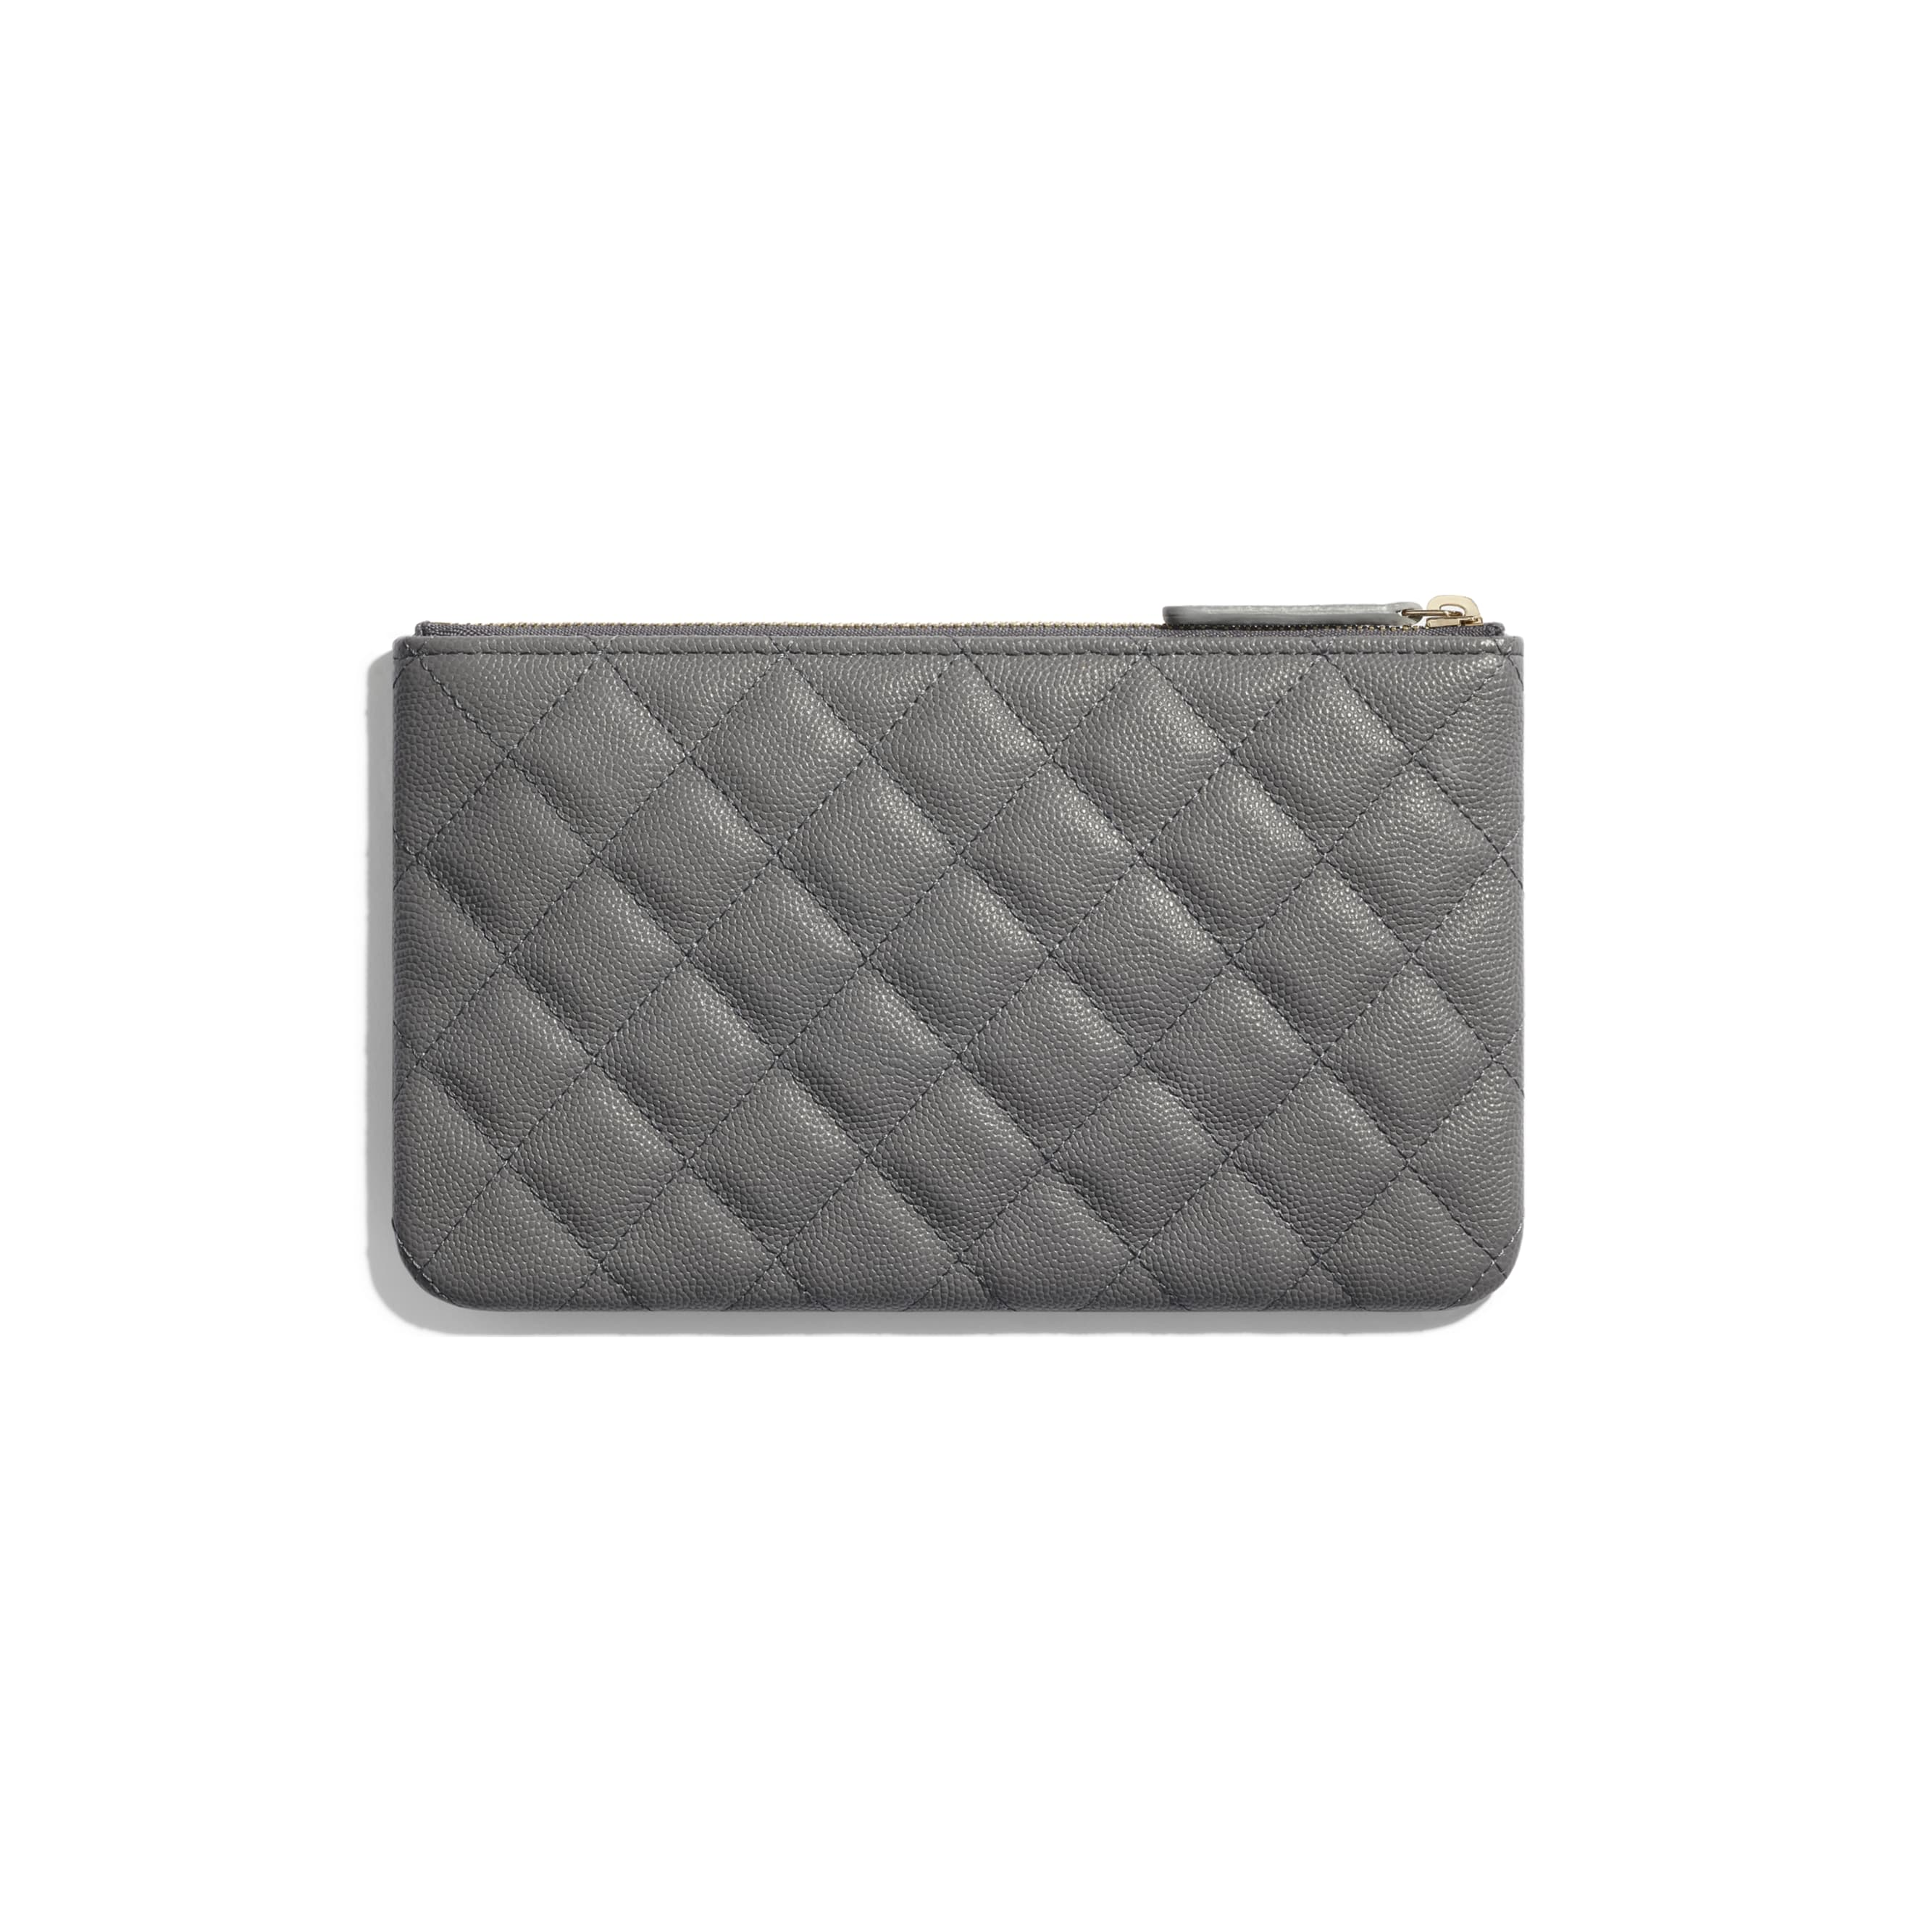 Small Pouch - Grey - Grained Calfskin & Gold-Tone Metal - CHANEL - Alternative view - see standard sized version